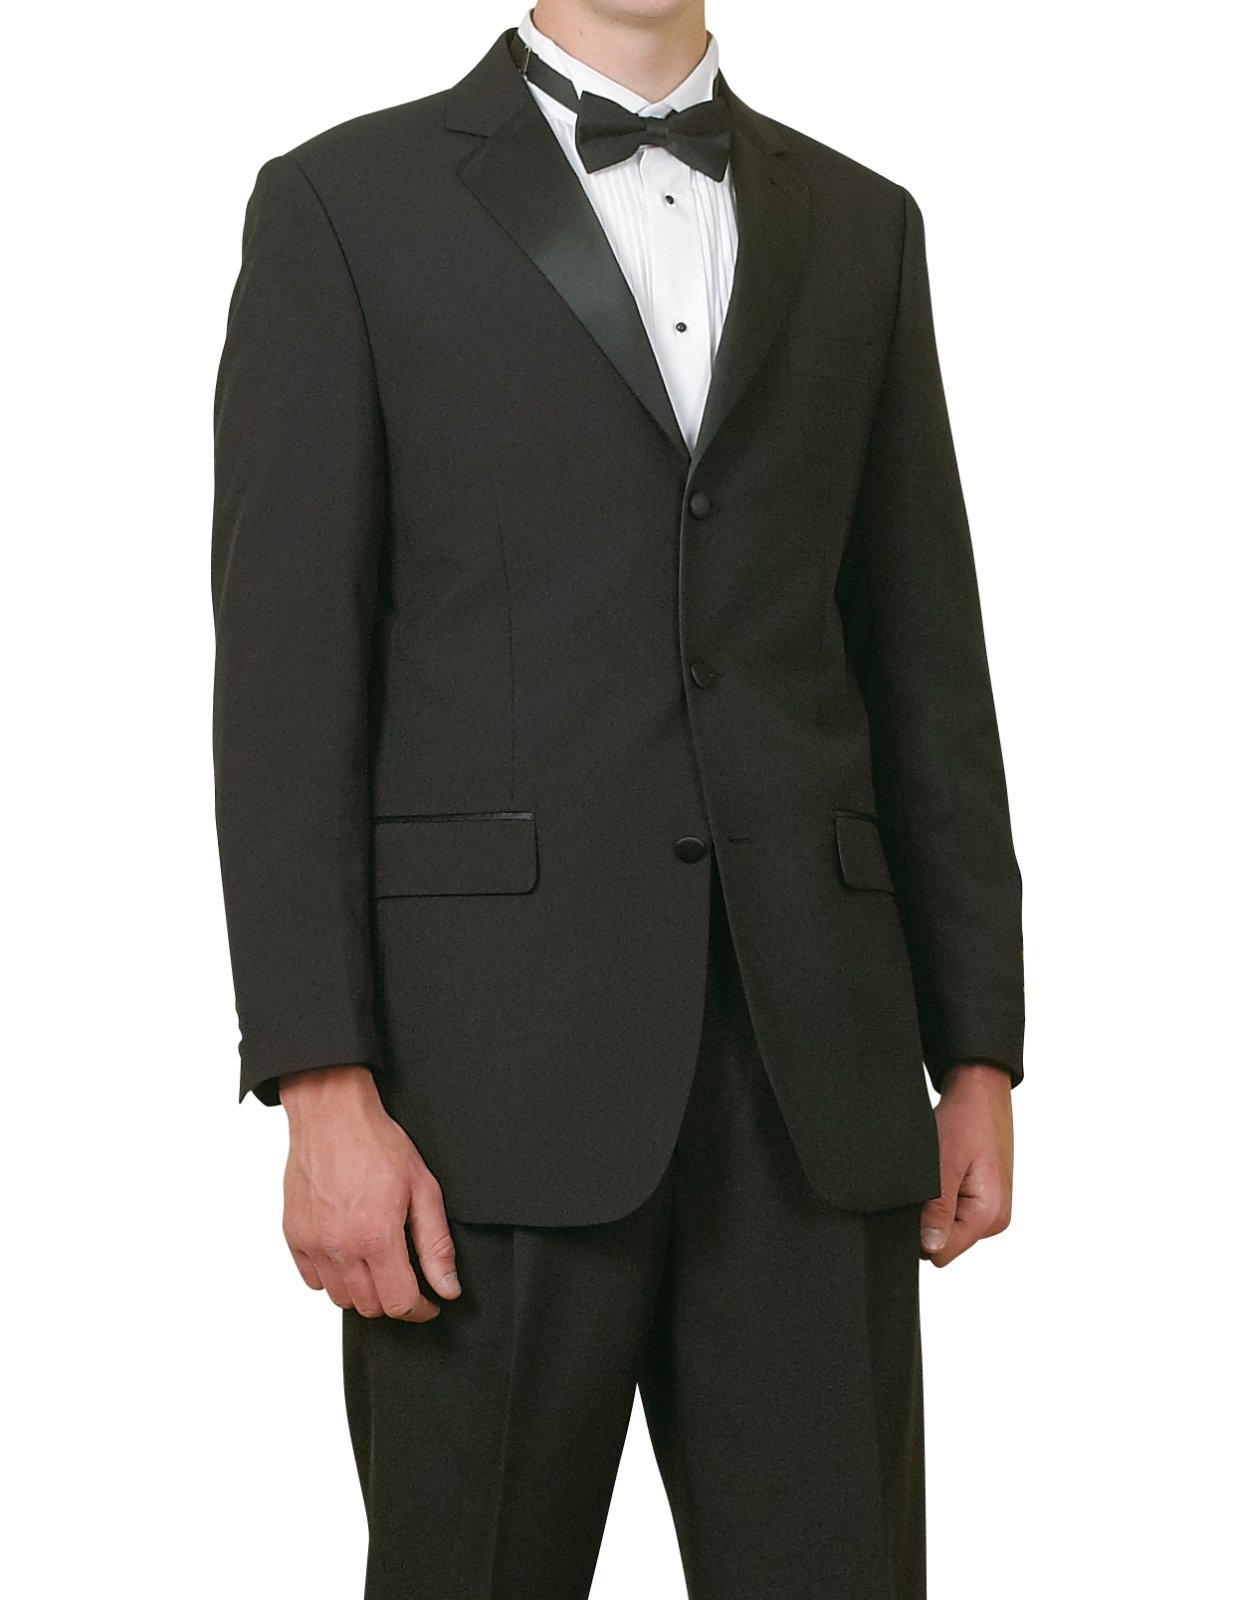 New Mens 5 Piece (5pc) Complete Single Breasted Black Tuxedo Suit